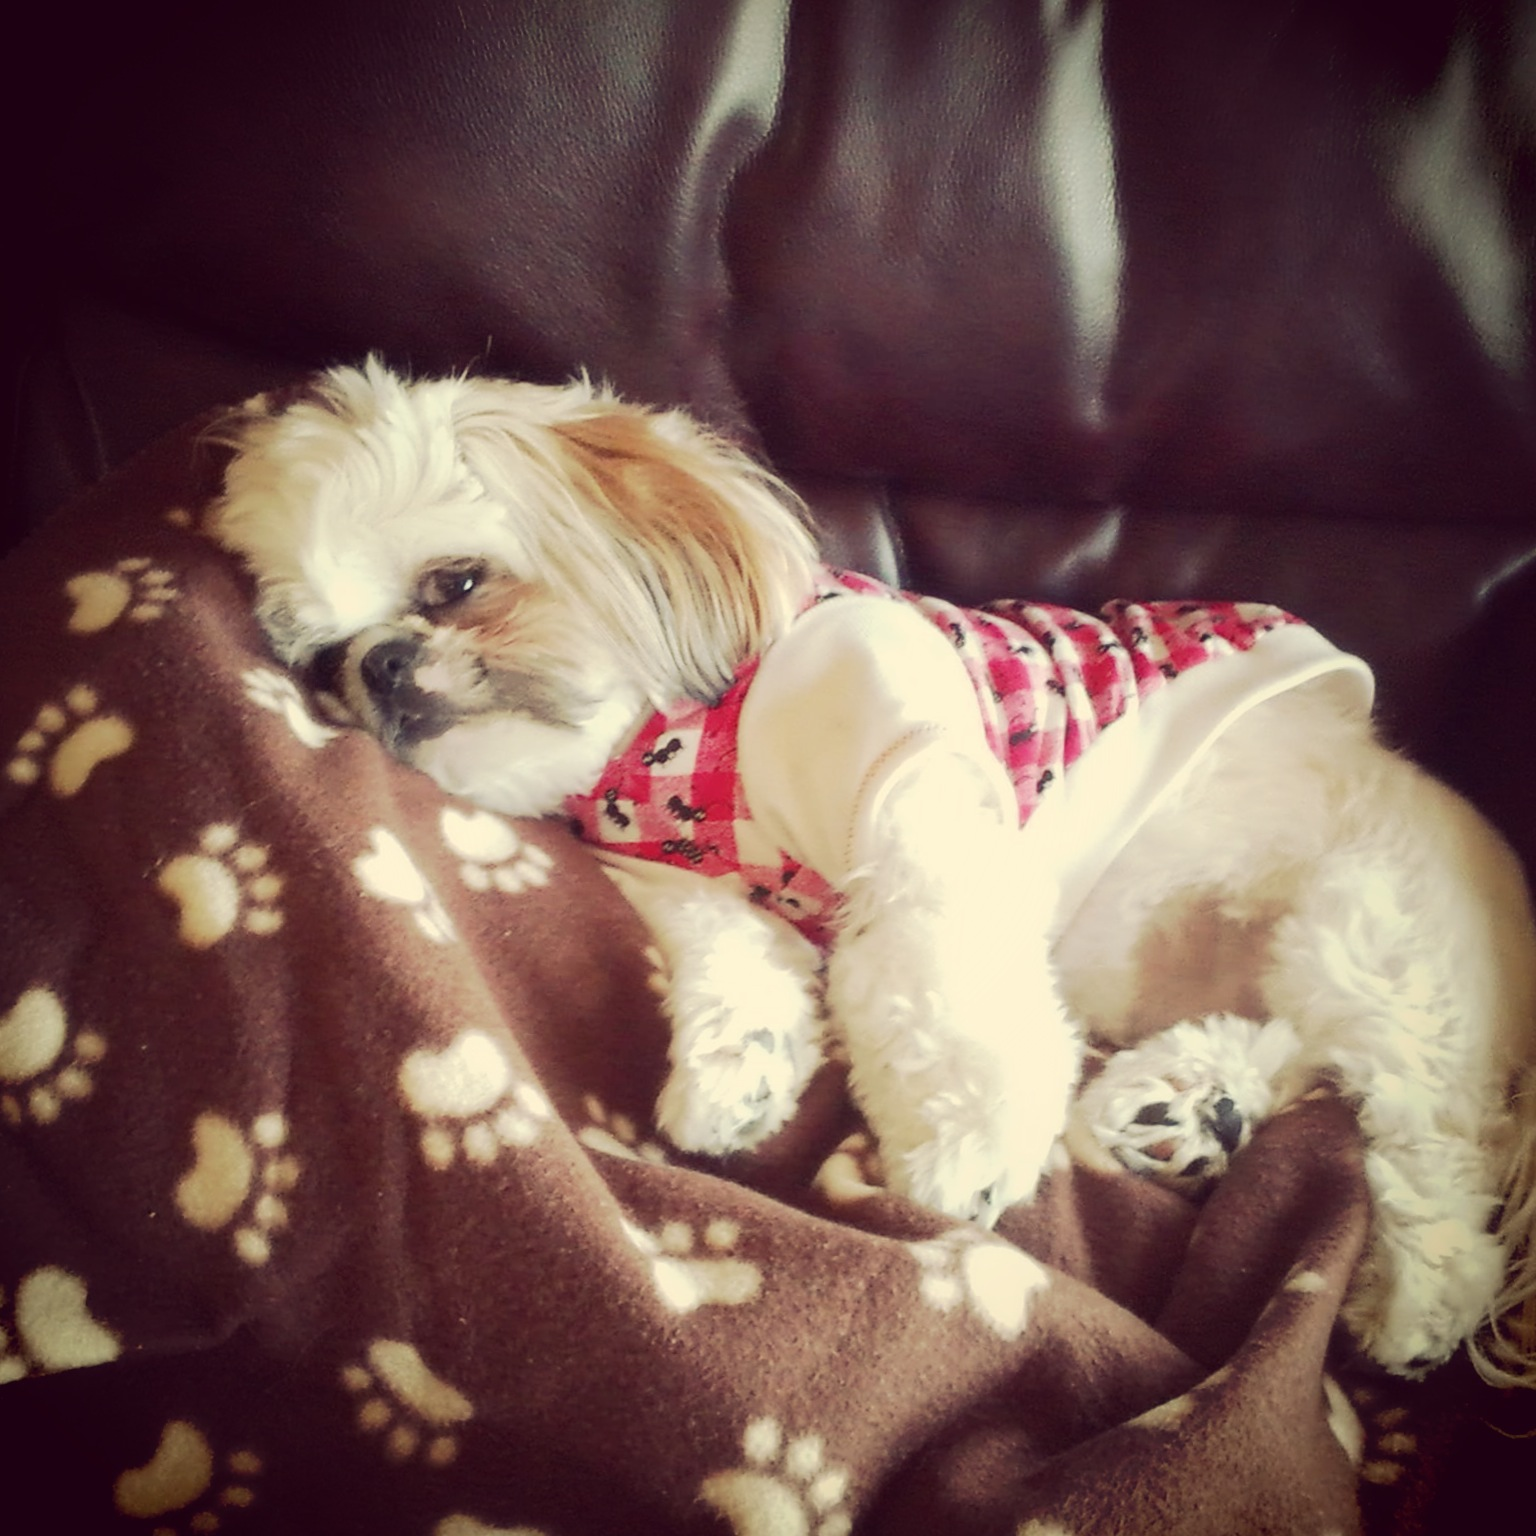 shih tzu pet sitting